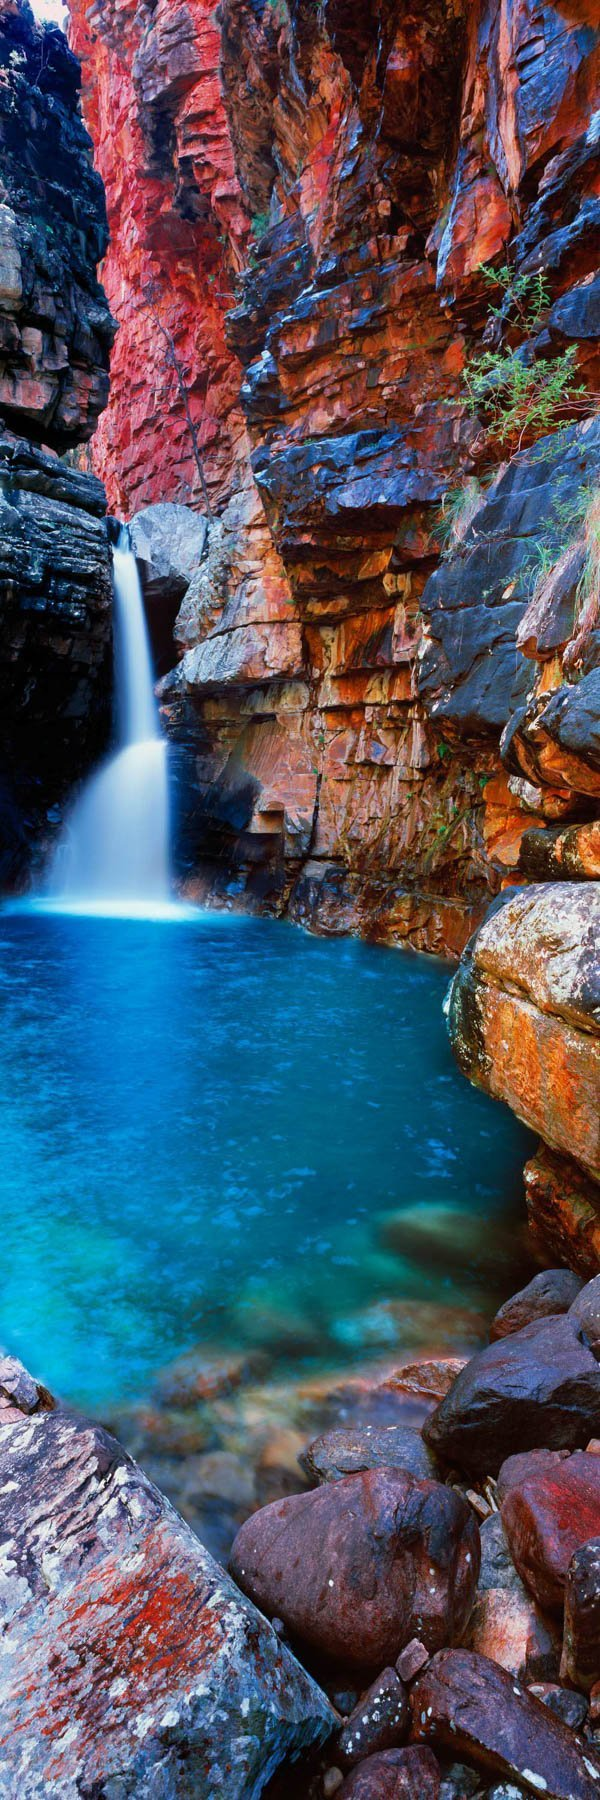 A hidden waterfall in the top end of WA, Australia.